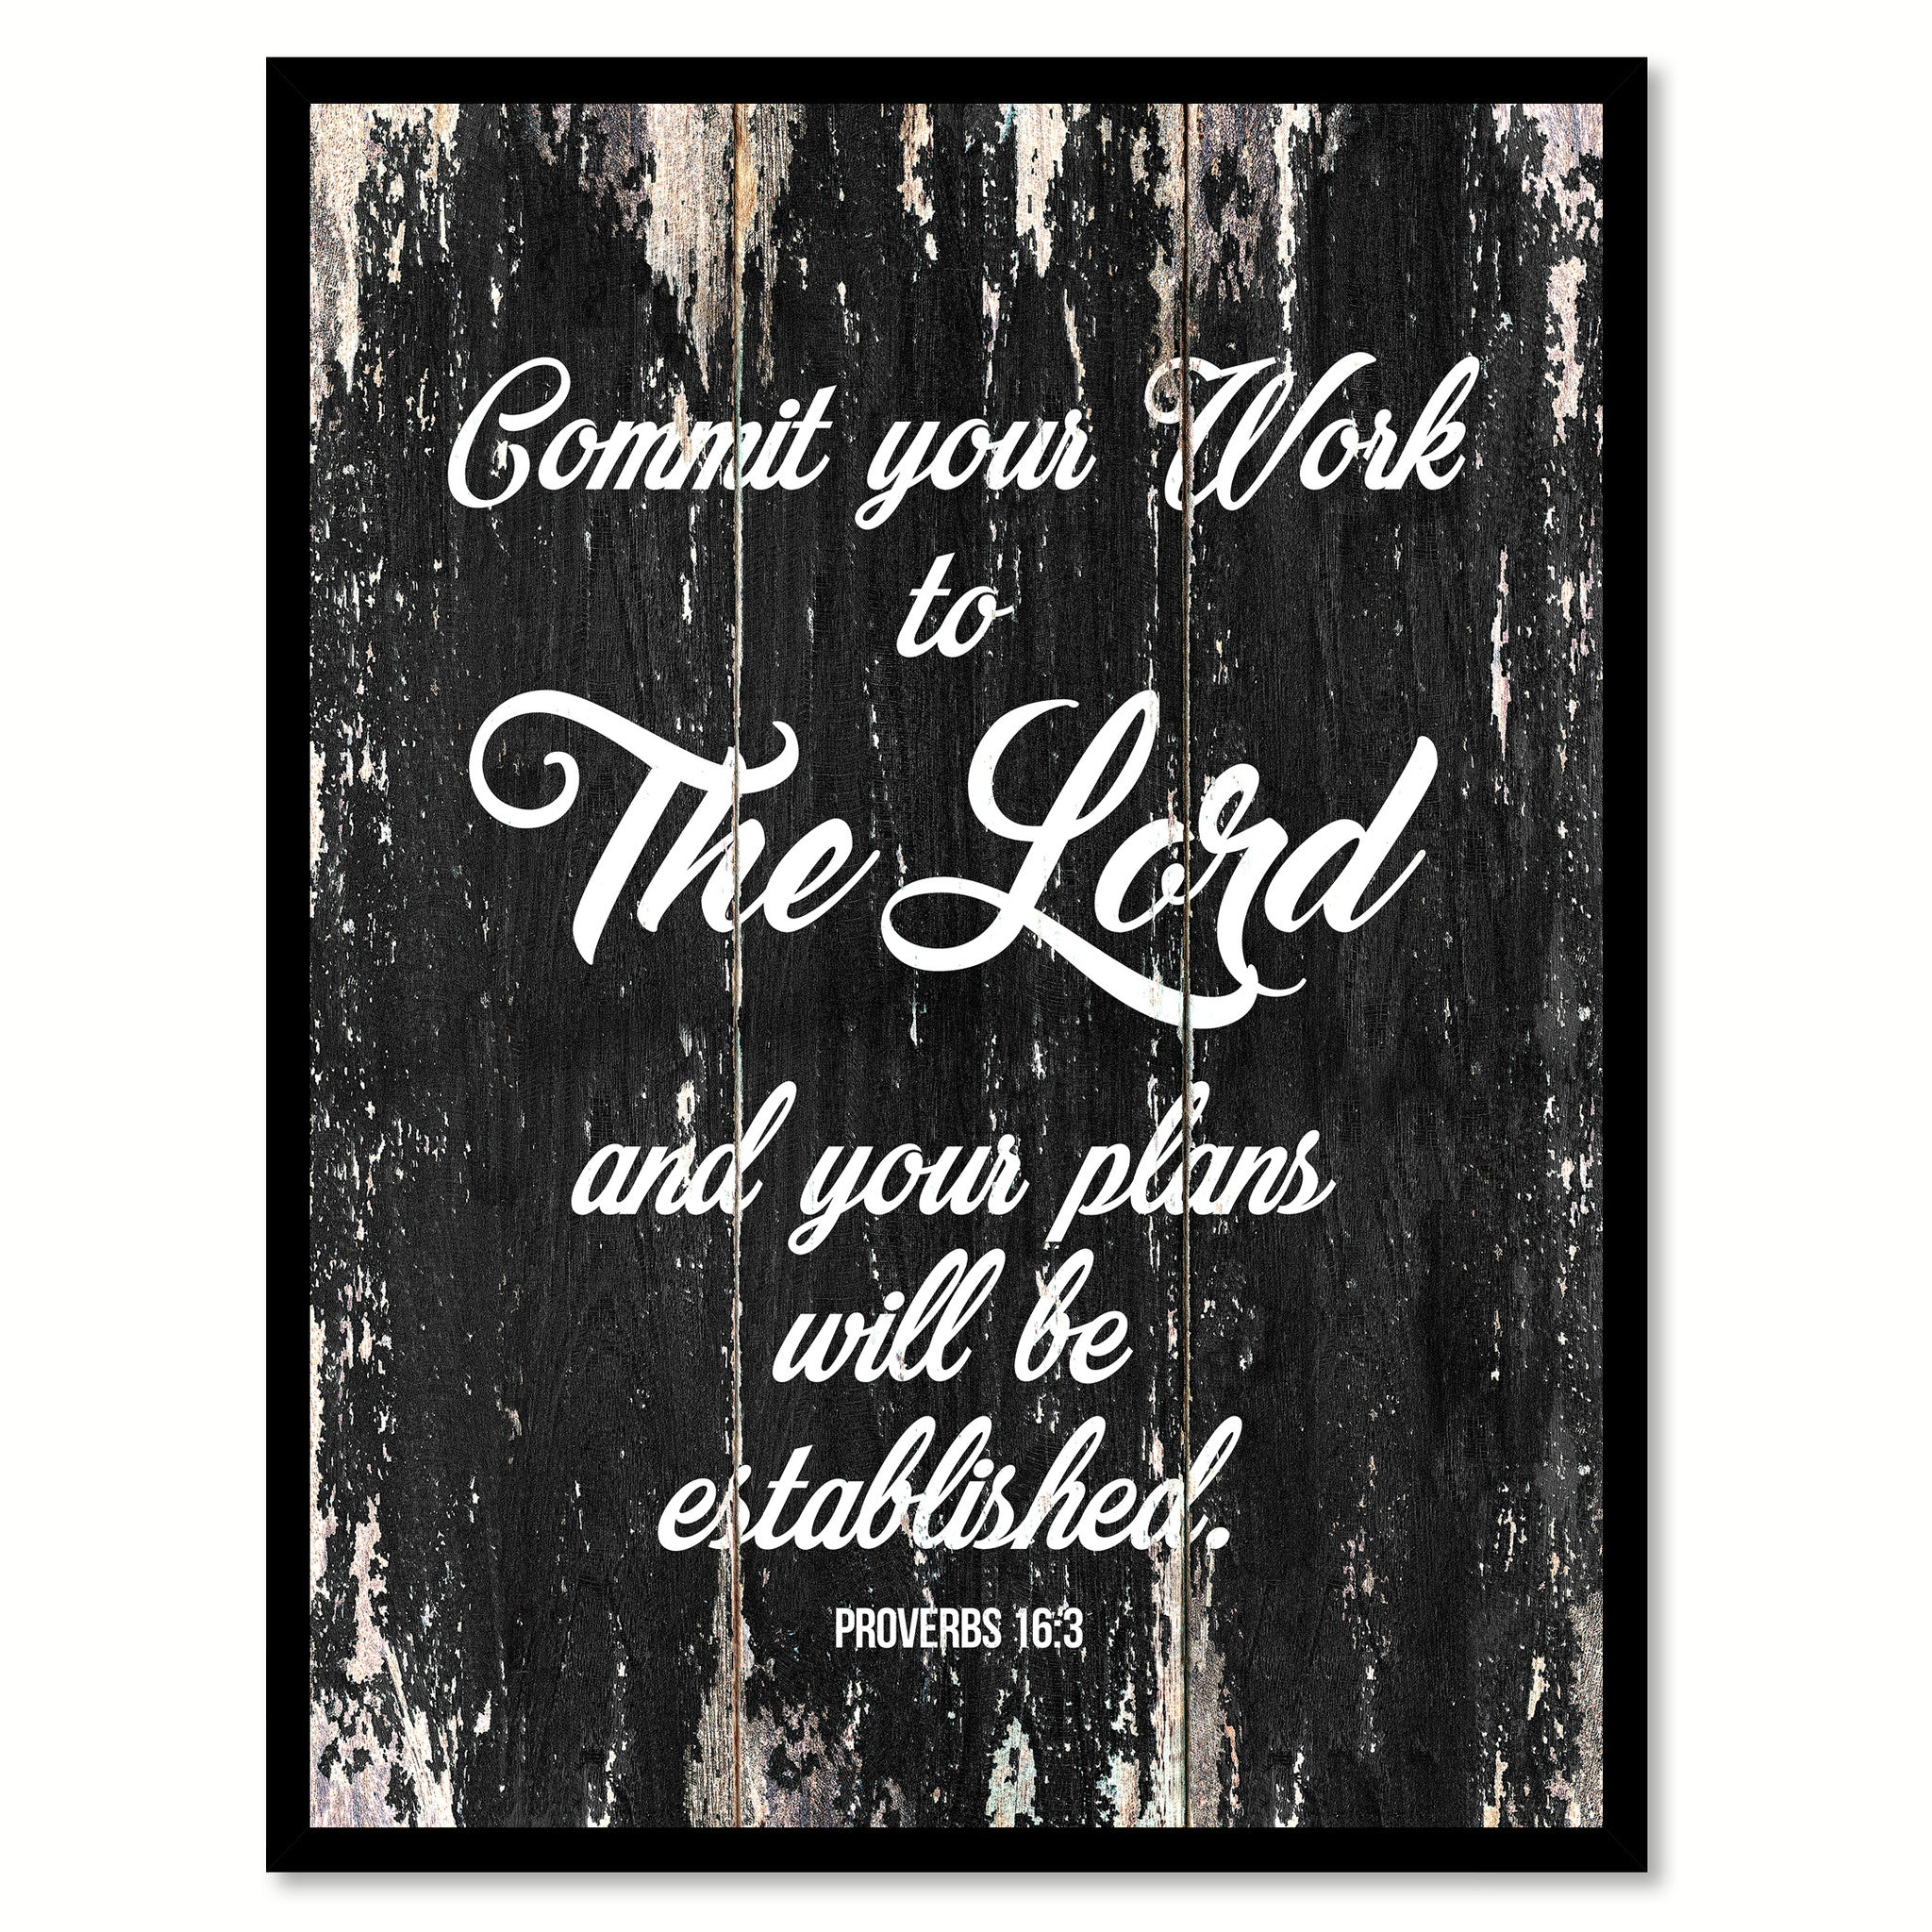 Commit your work to the lord & your plans will be established Proverbs 16-3 Quote Saying Canvas Print with Picture Frame Home Decor Wall Art